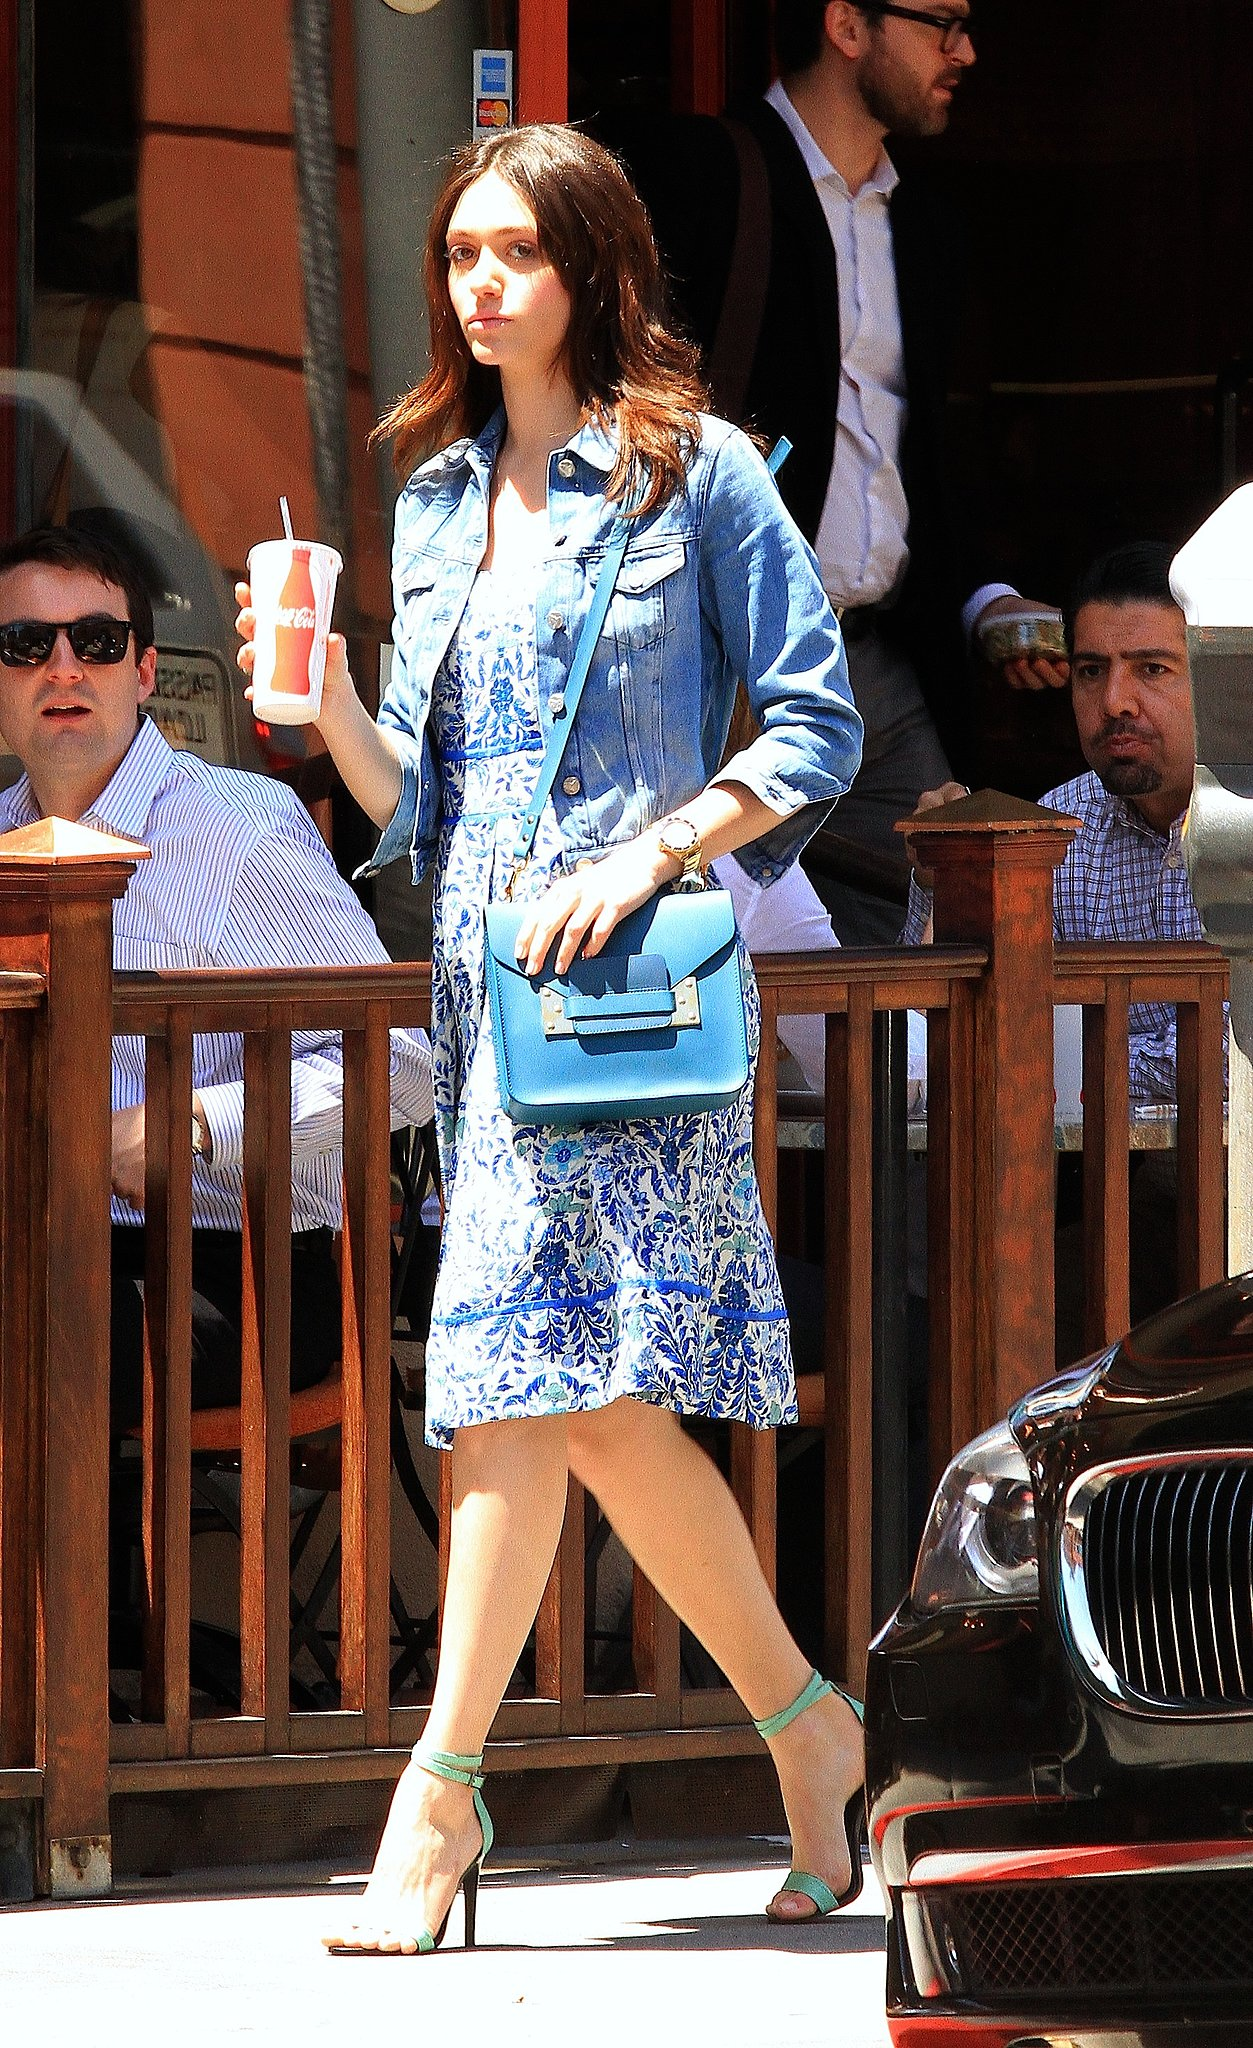 To give your sundresses a casual spin, just throw on a denim jacket like Emmy Rossum did with her Tory Burch printed dress.